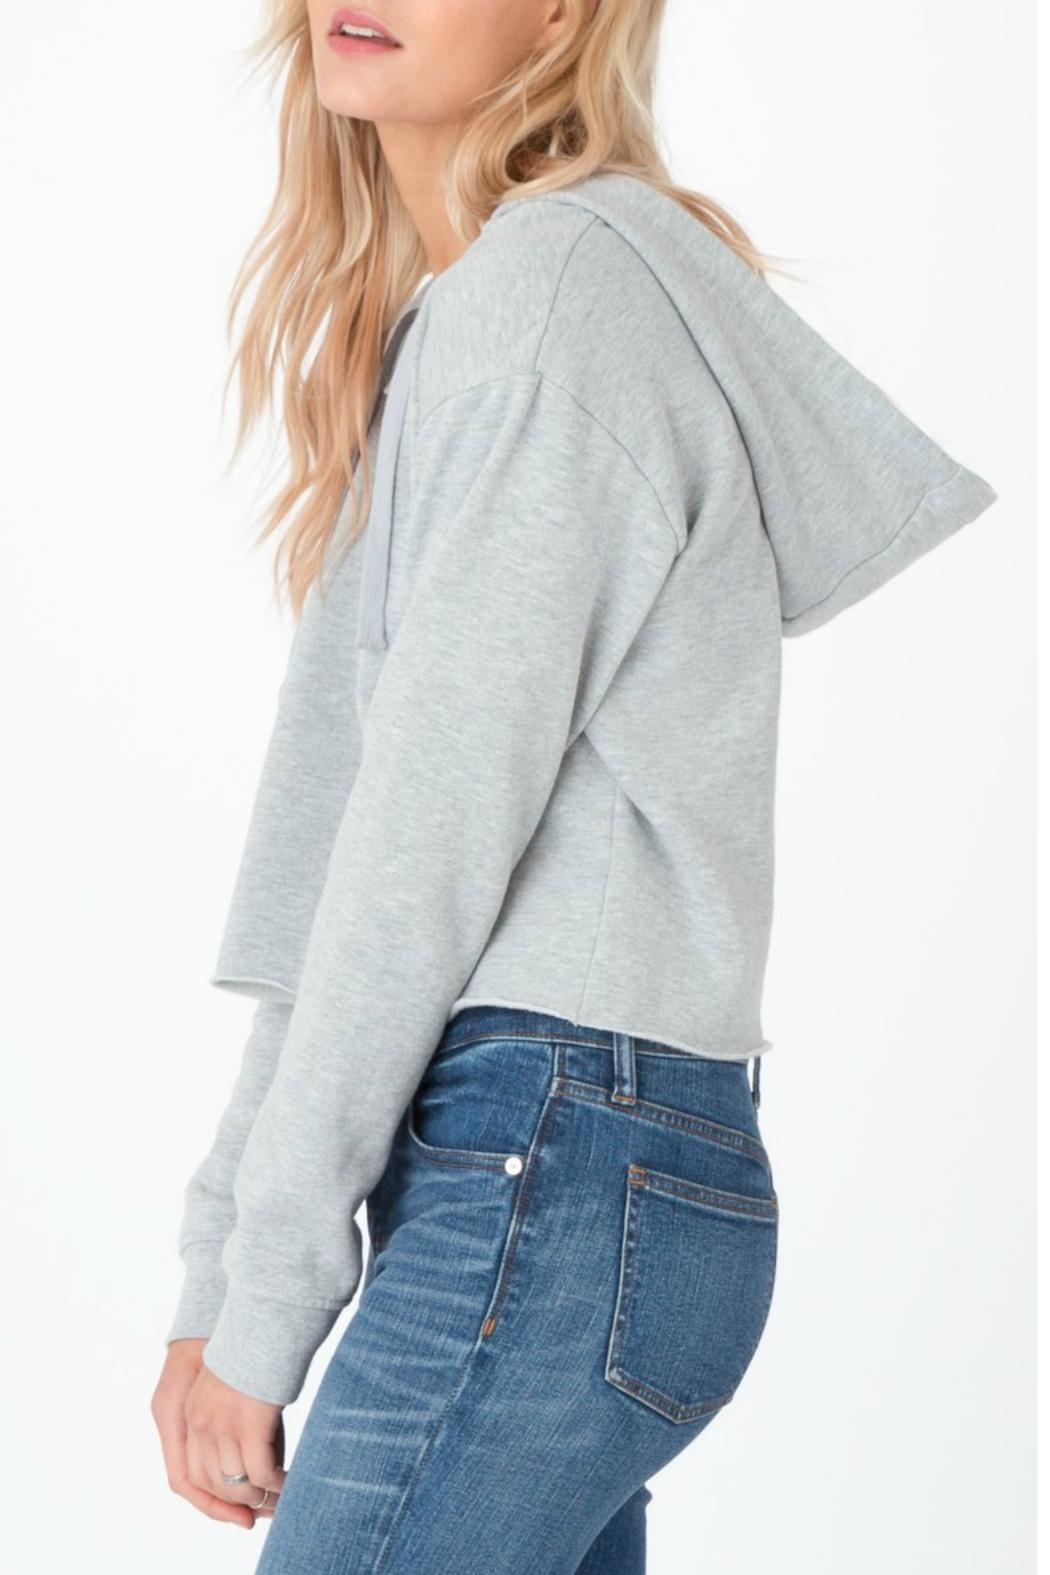 z supply Cropped Lace Up Hoodie - Front Full Image